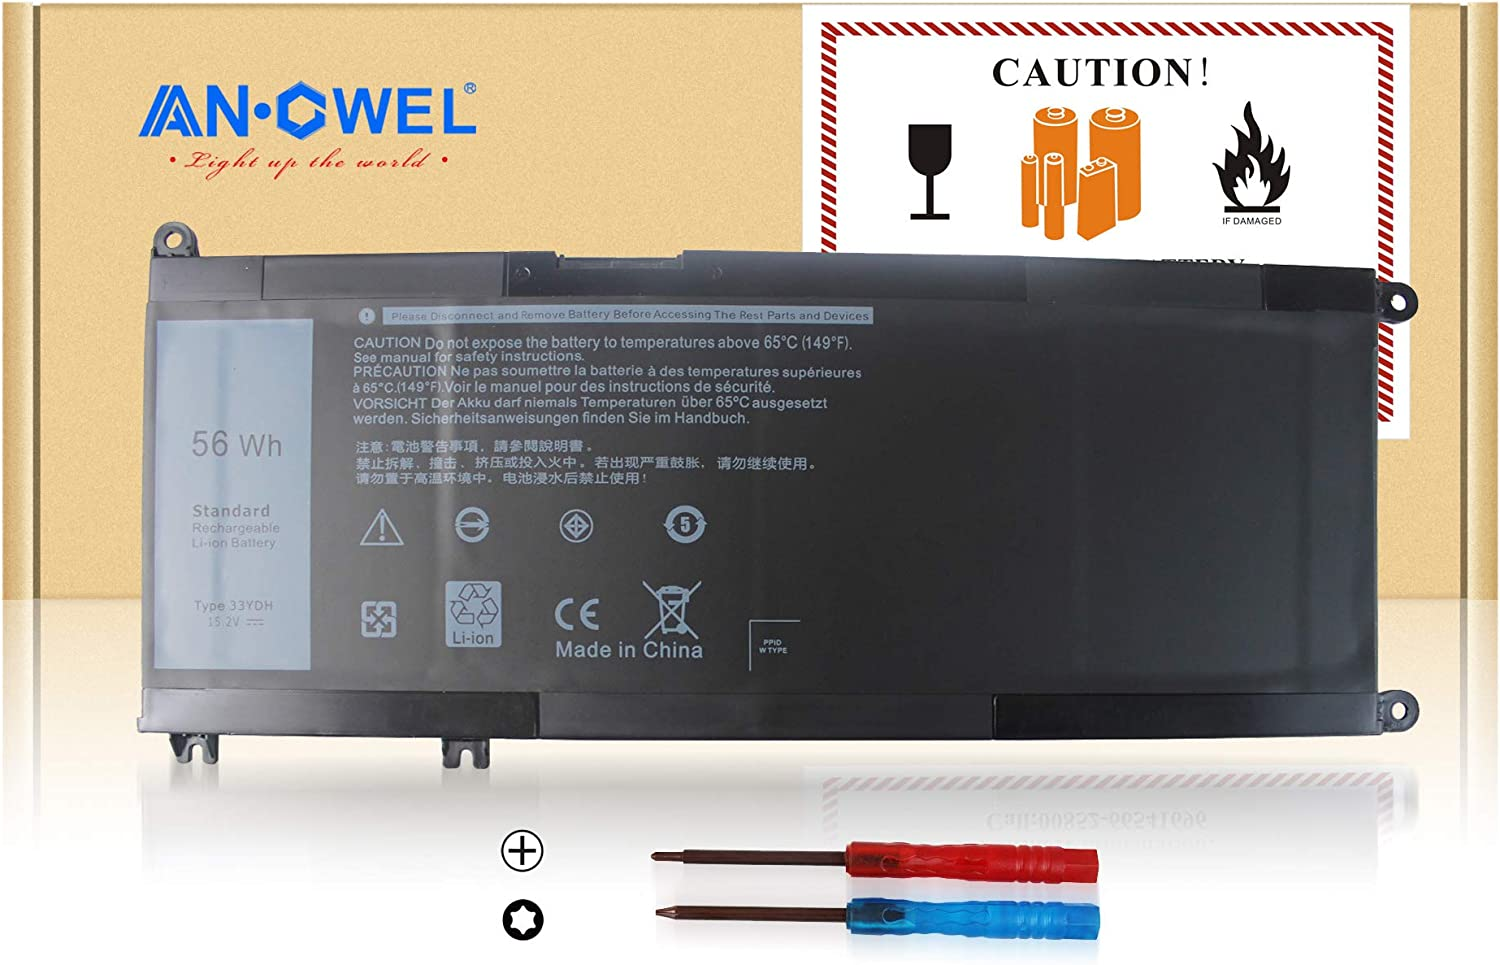 Angwel 33YDH Laptop Battery for Dell Inspiron 13 7353 Inspiron 17 7000 7773 7778 7779 Dell G3 15 3579 G3 17 3779 G5 15 5587 G7 15 7588 Latitude 13 3380 14 3490 15 3590 3580 Series[15.2V 56Wh 3500mAh]